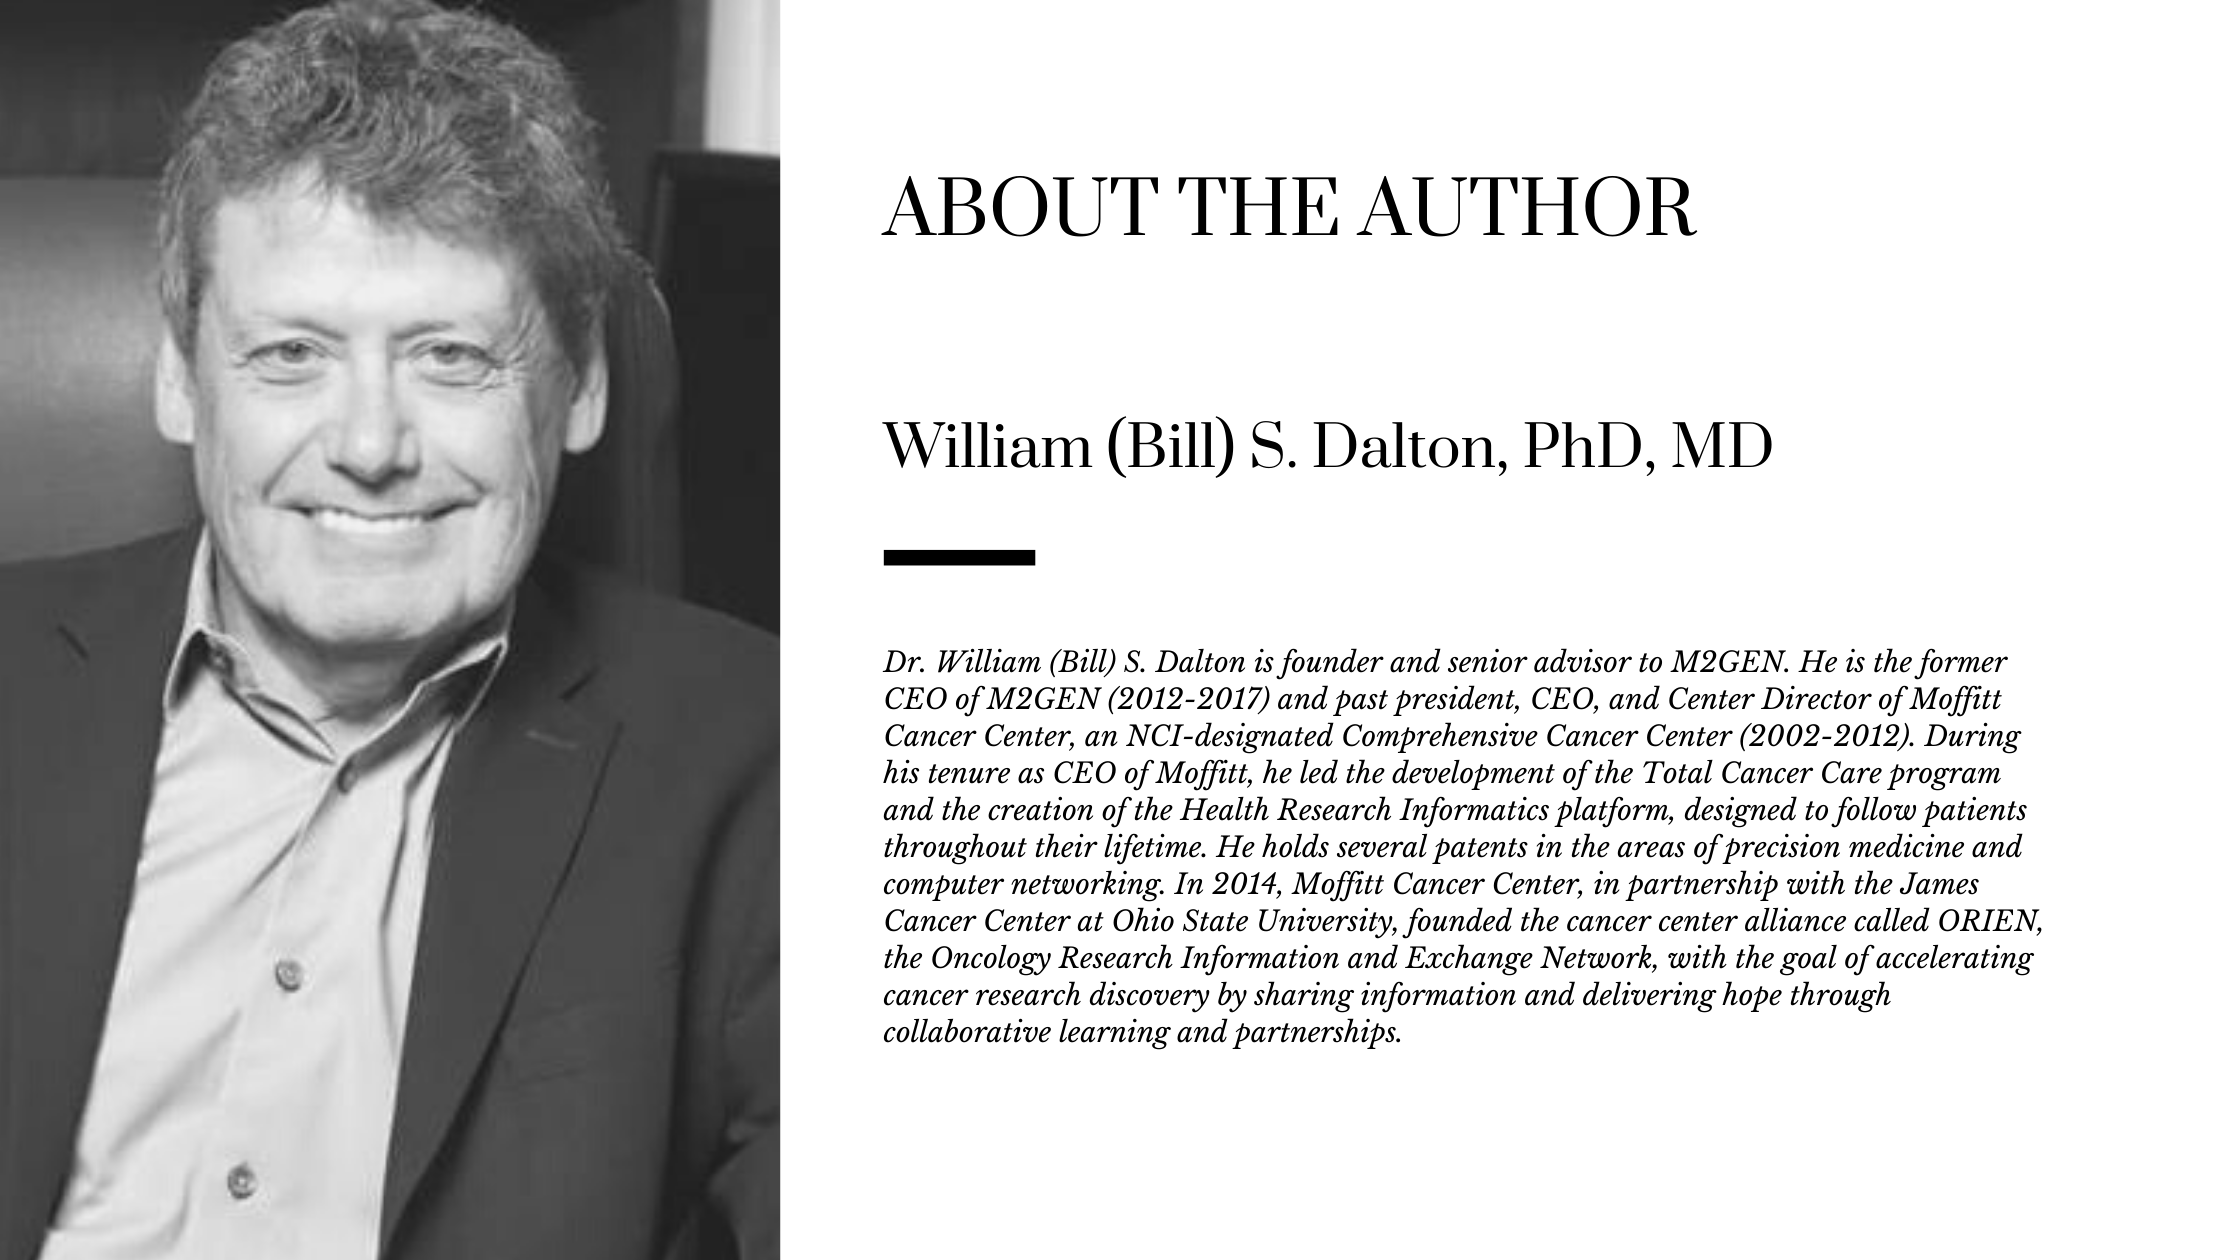 ABOUT THE AUTHOR William (Bill) S. Dalton, PhD, MD